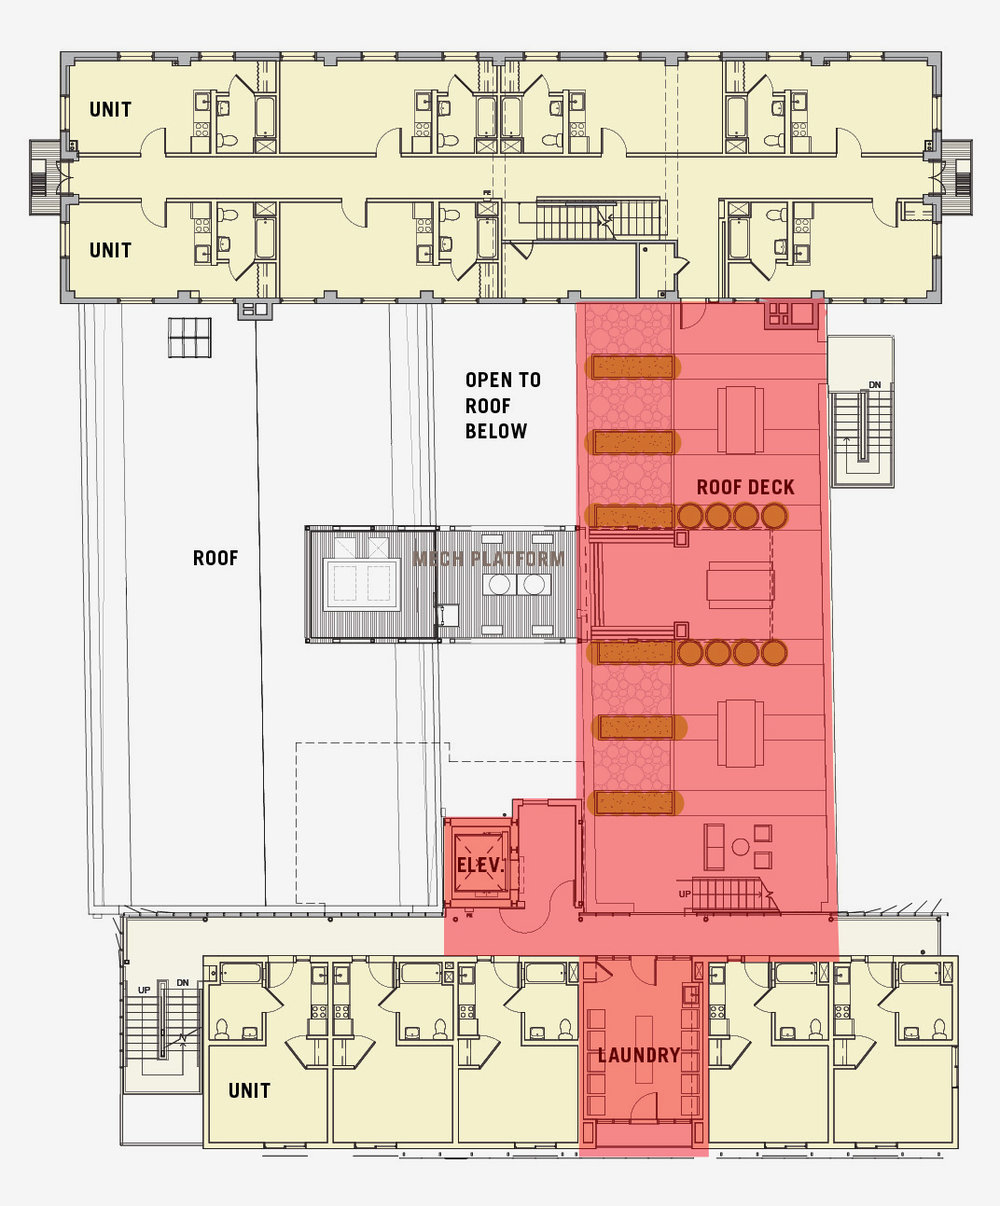 28th Street Apartments - Third Floor Plan - KEA.jpg